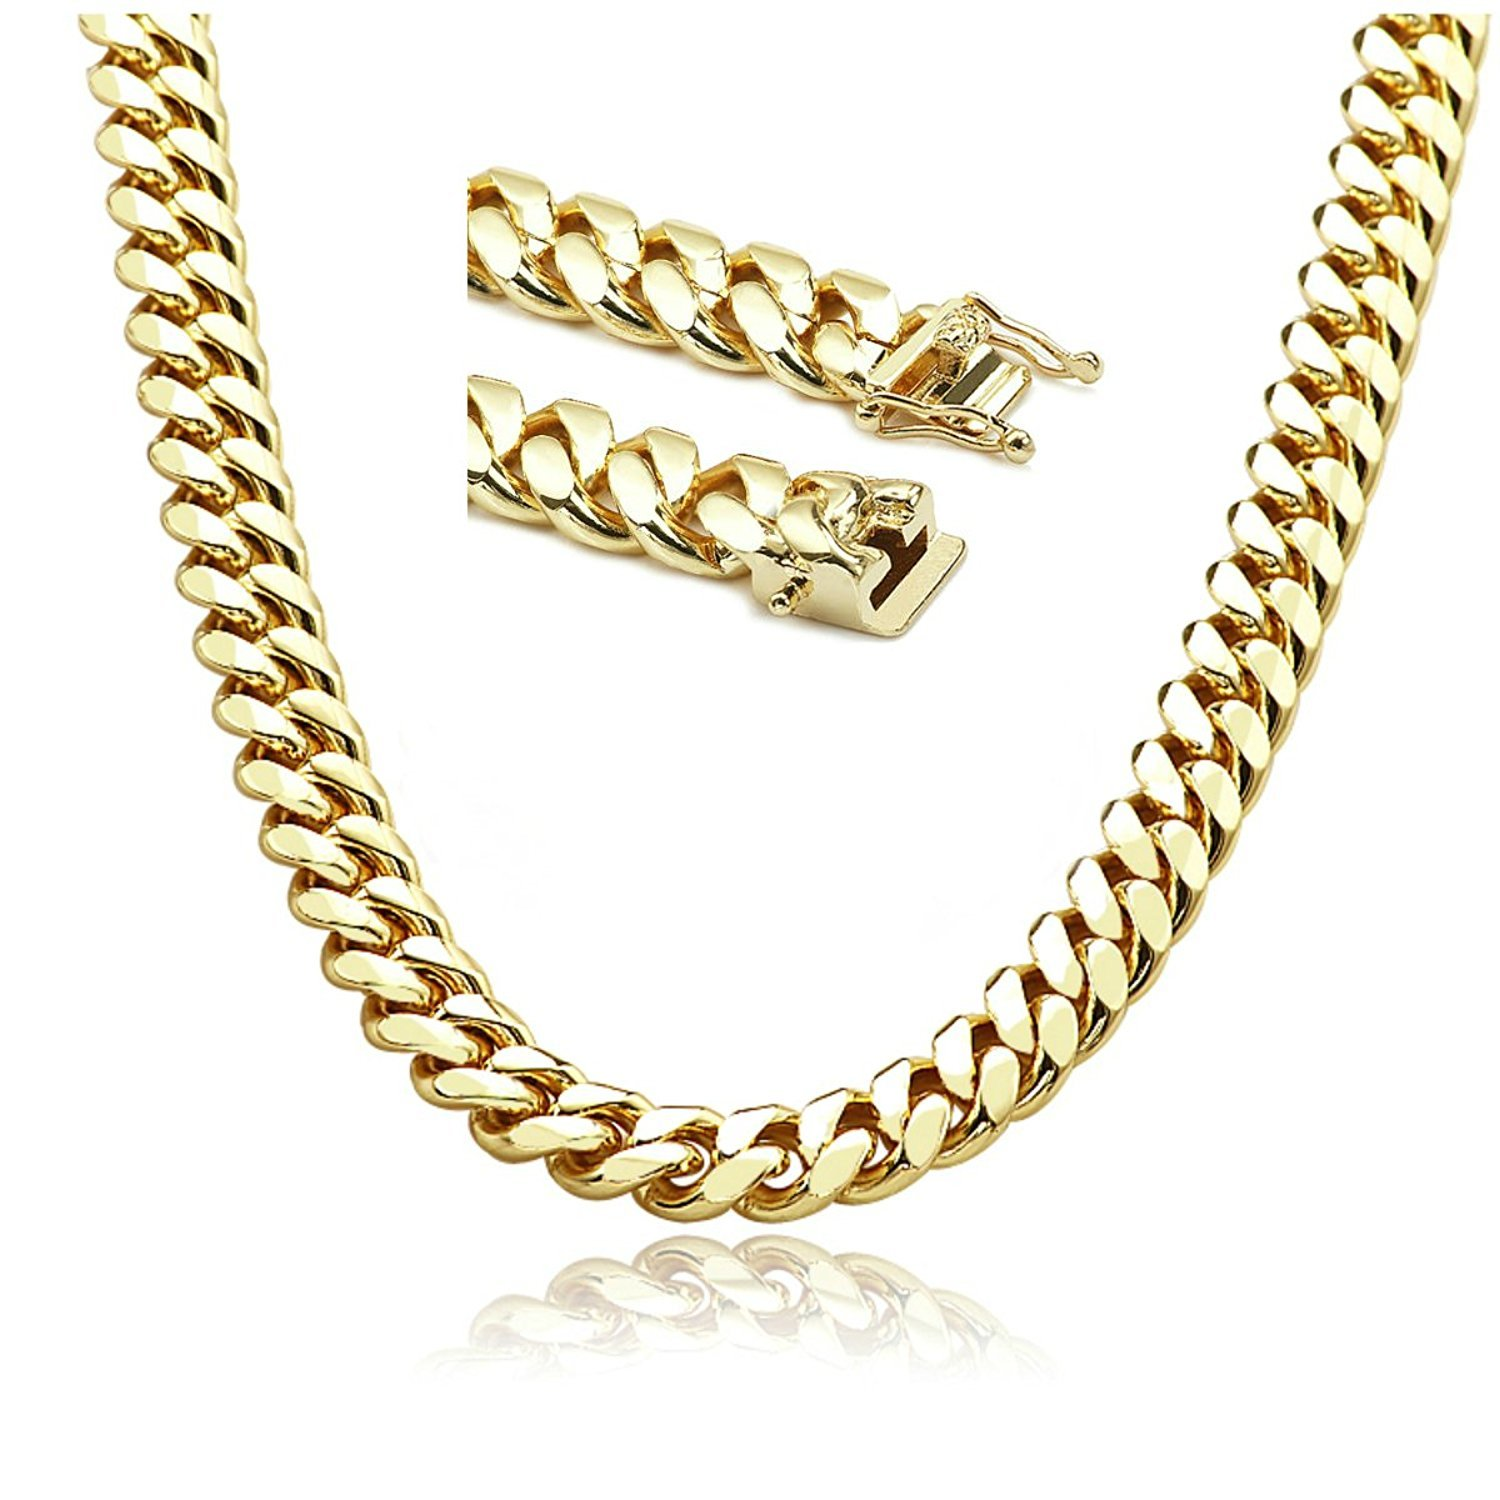 Gold chain necklace 14mm 24Karat Diamond Cut Smooth Cuban Link With A Warranty Of A LifeTIime. USA made(24)